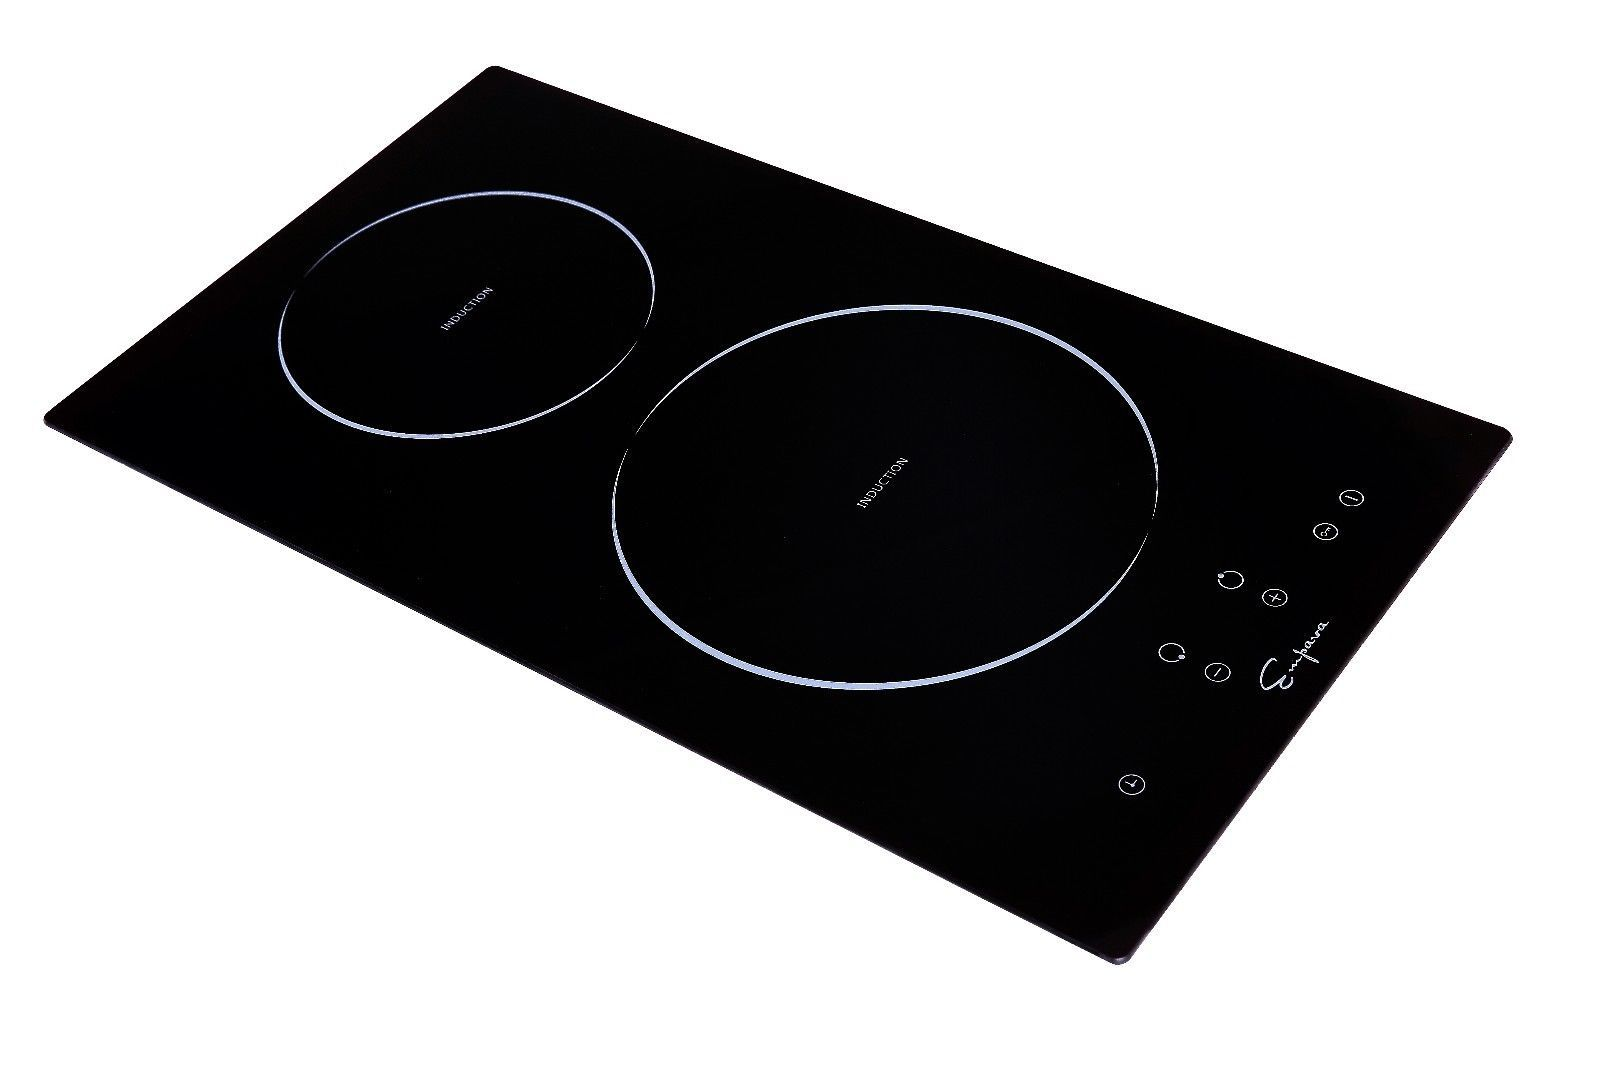 12 Electric 2 Burners Induction Cooktop Induction Cooktop Induction Cookware Cooktop